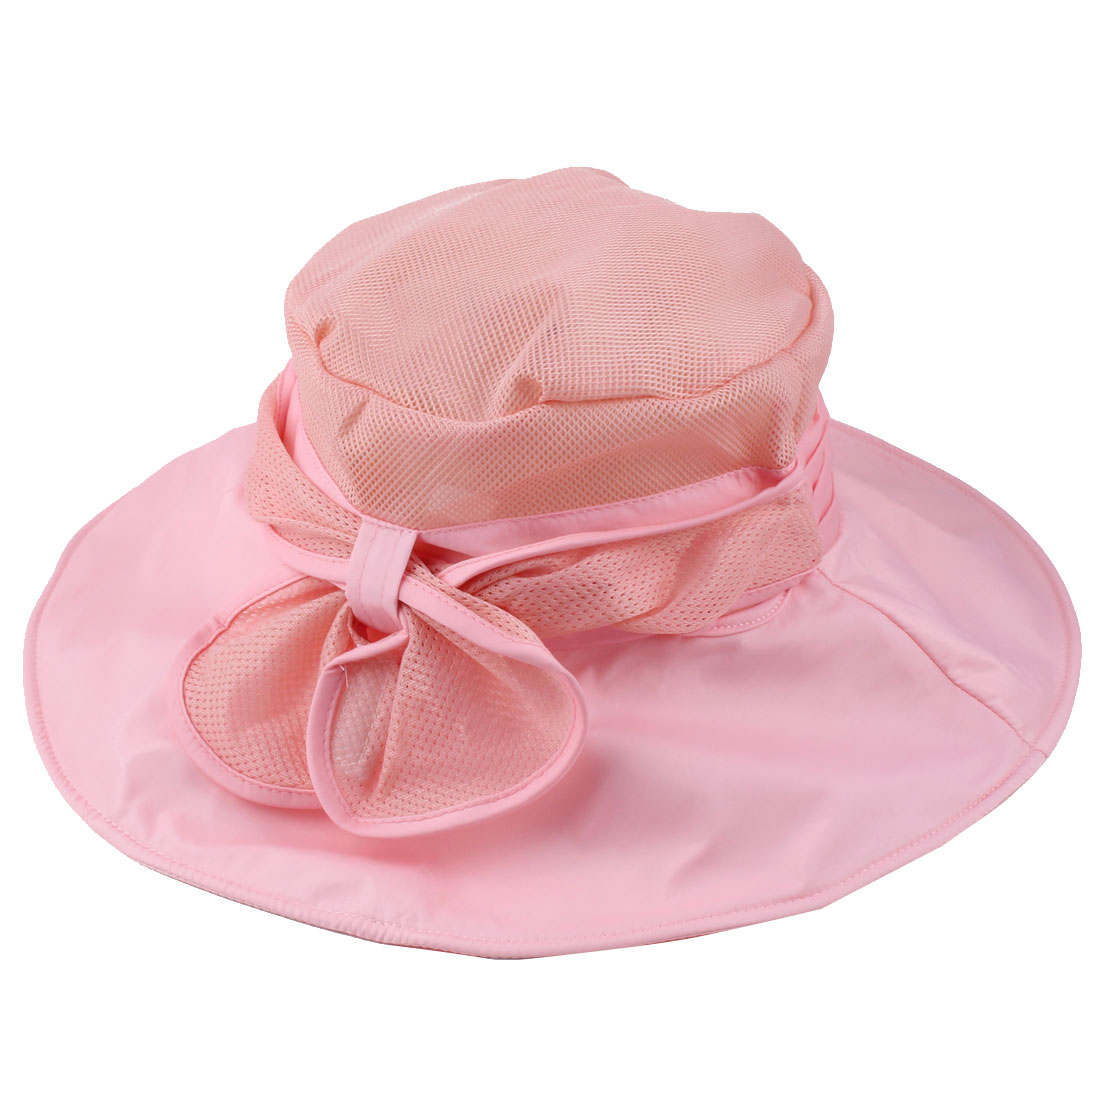 Women Summer Sea Beach Travel Polyester Foldable Floppy Sun Protector Hat Cap Pink